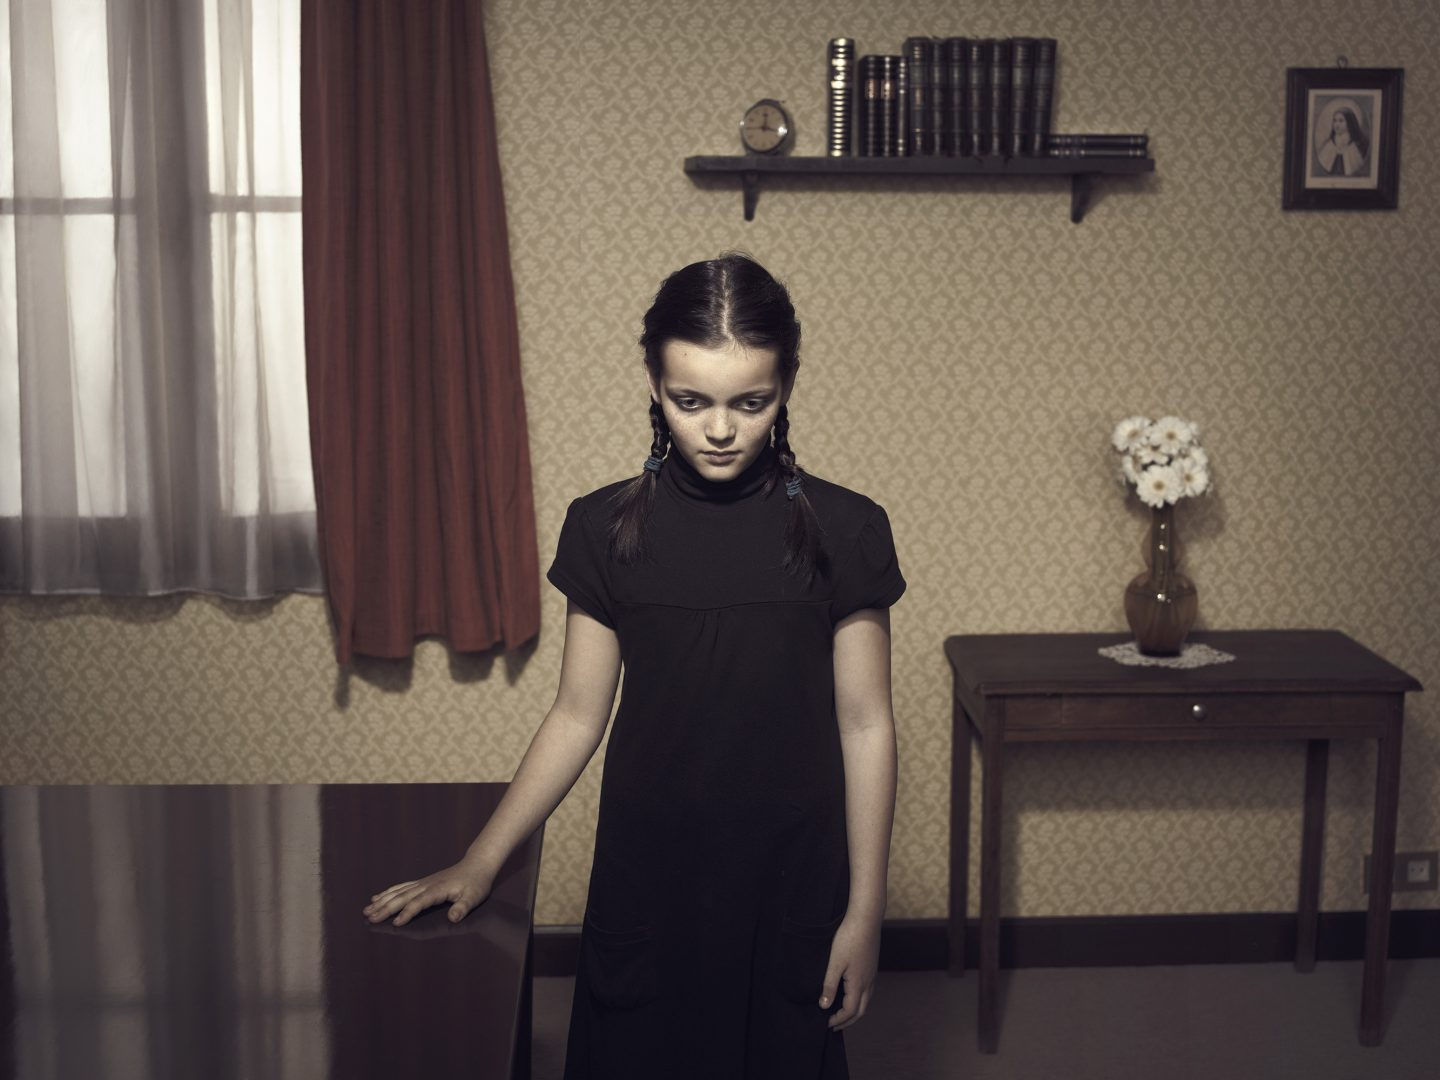 Girl standing at table in middle of room 42 by Stefan Rappo